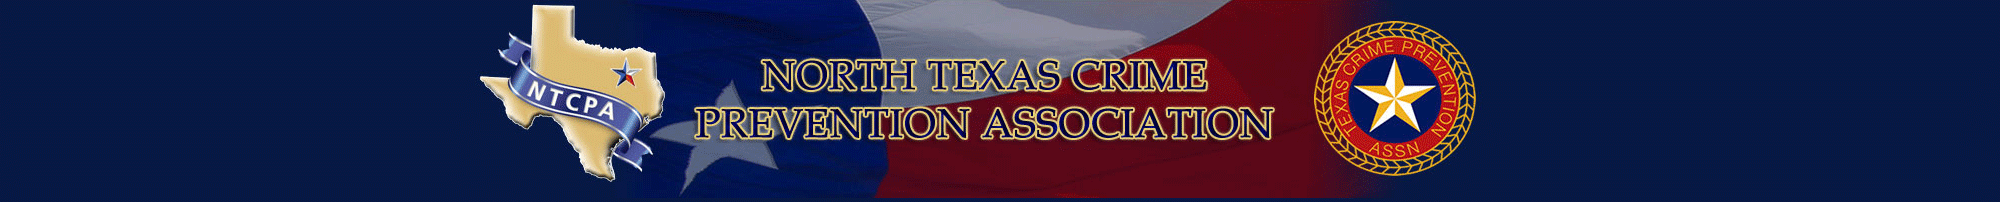 North Texas Crime Prevention Association